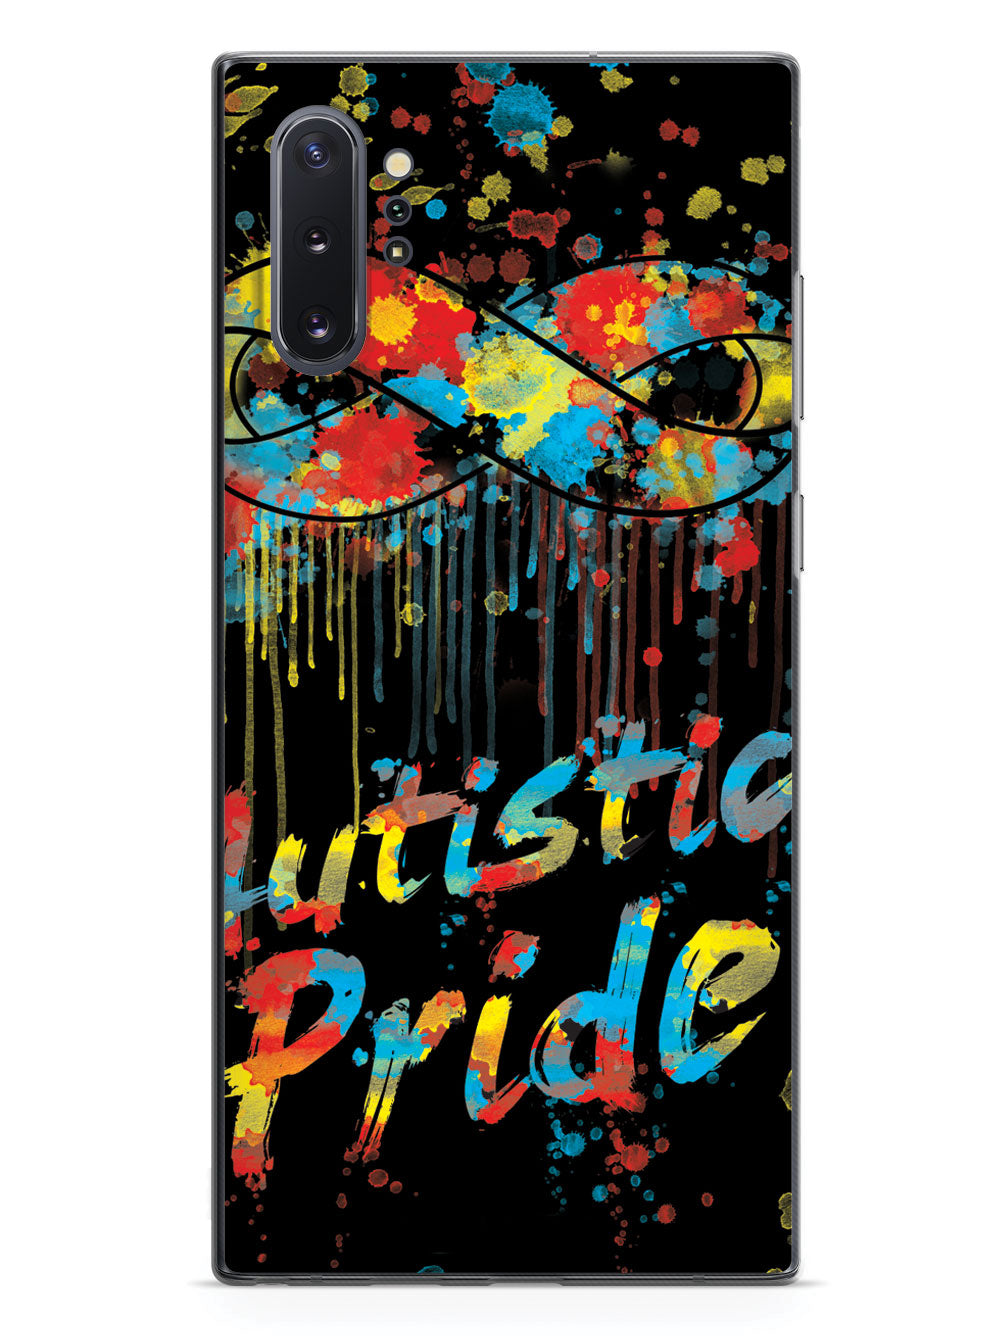 Autistic Pride - Autism Awareness Case